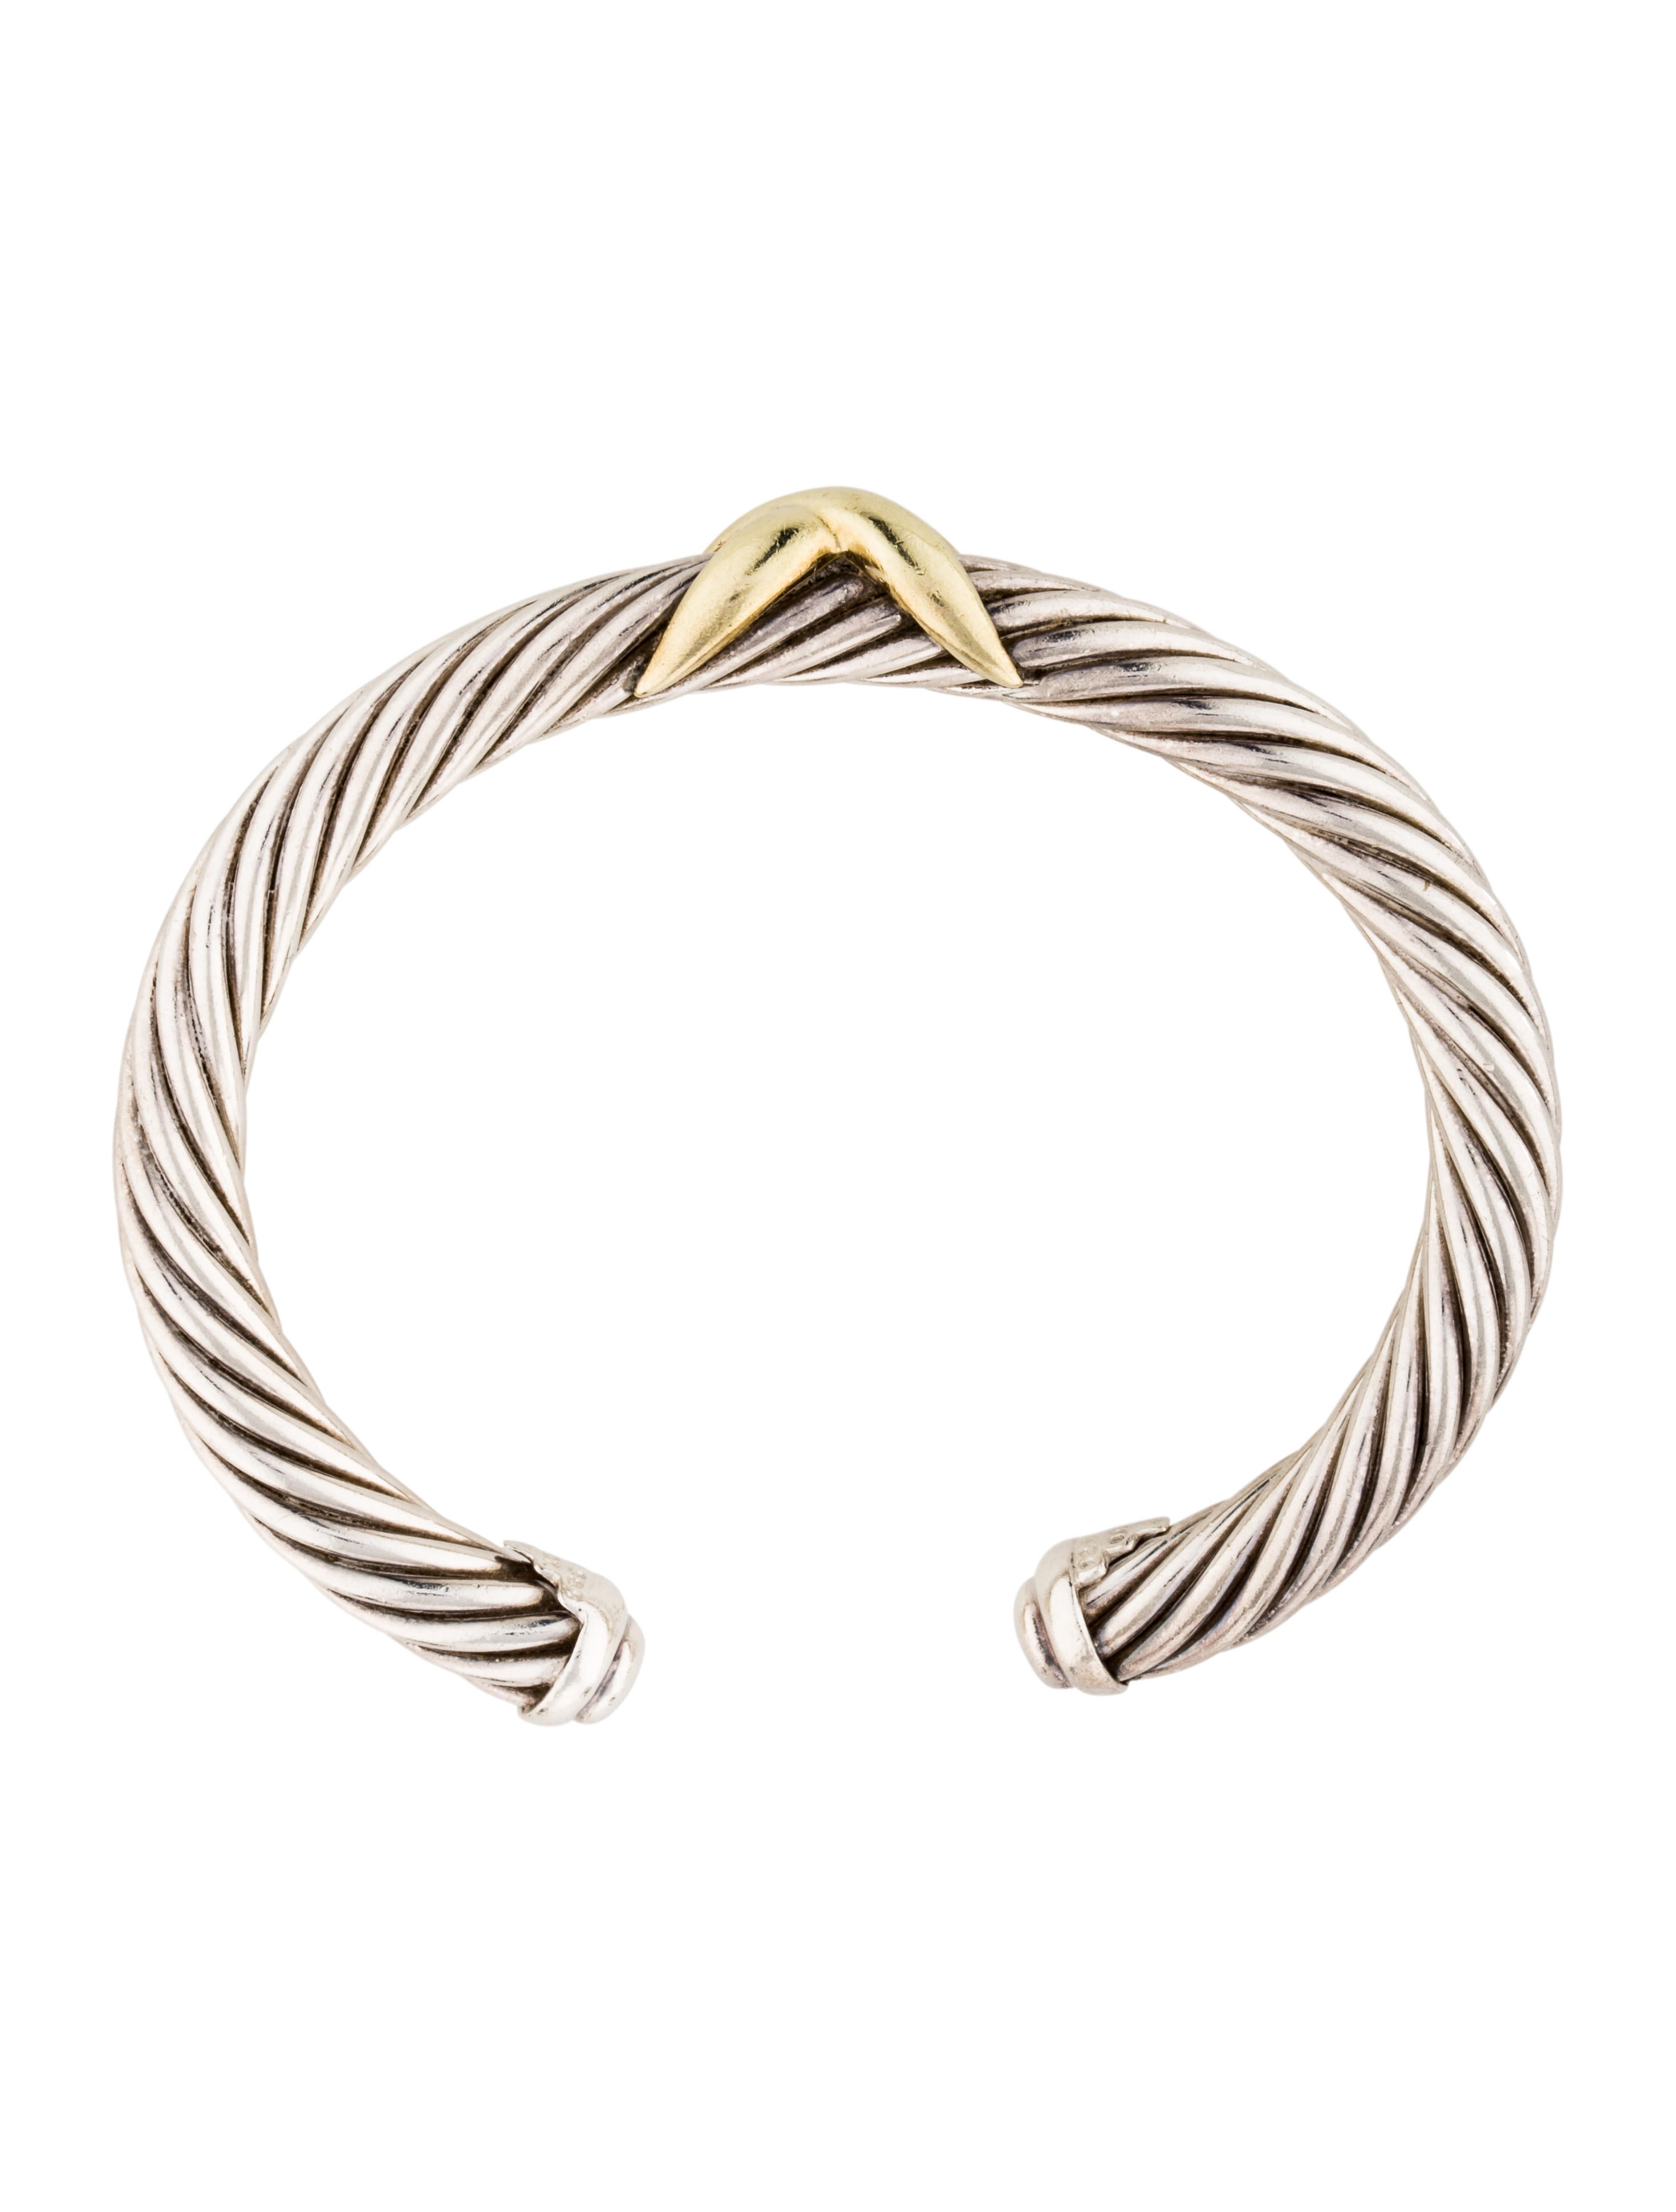 David yurman two tone x cable bracelet bracelets for David yurman inspired bracelet cable